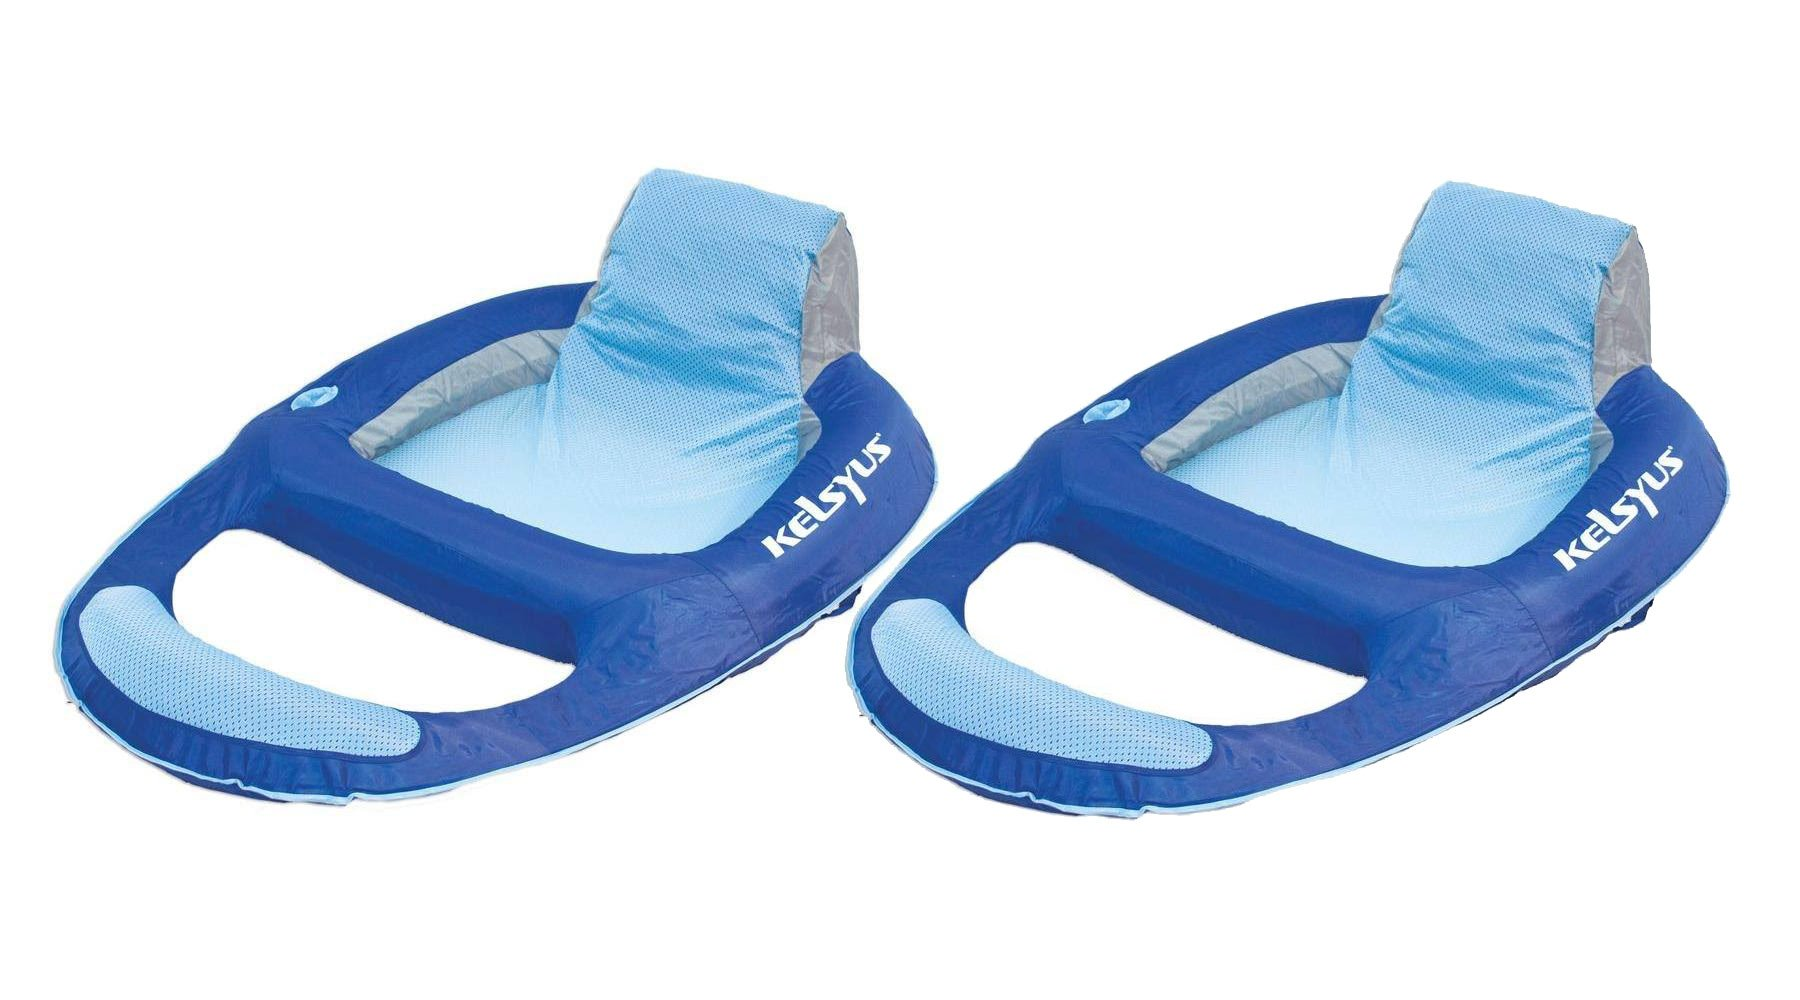 Kelsyus Floating Pool Lounger Inflatable Chair w/ Cup Holder Blue (2 Pack) 80014 by Kelsyus